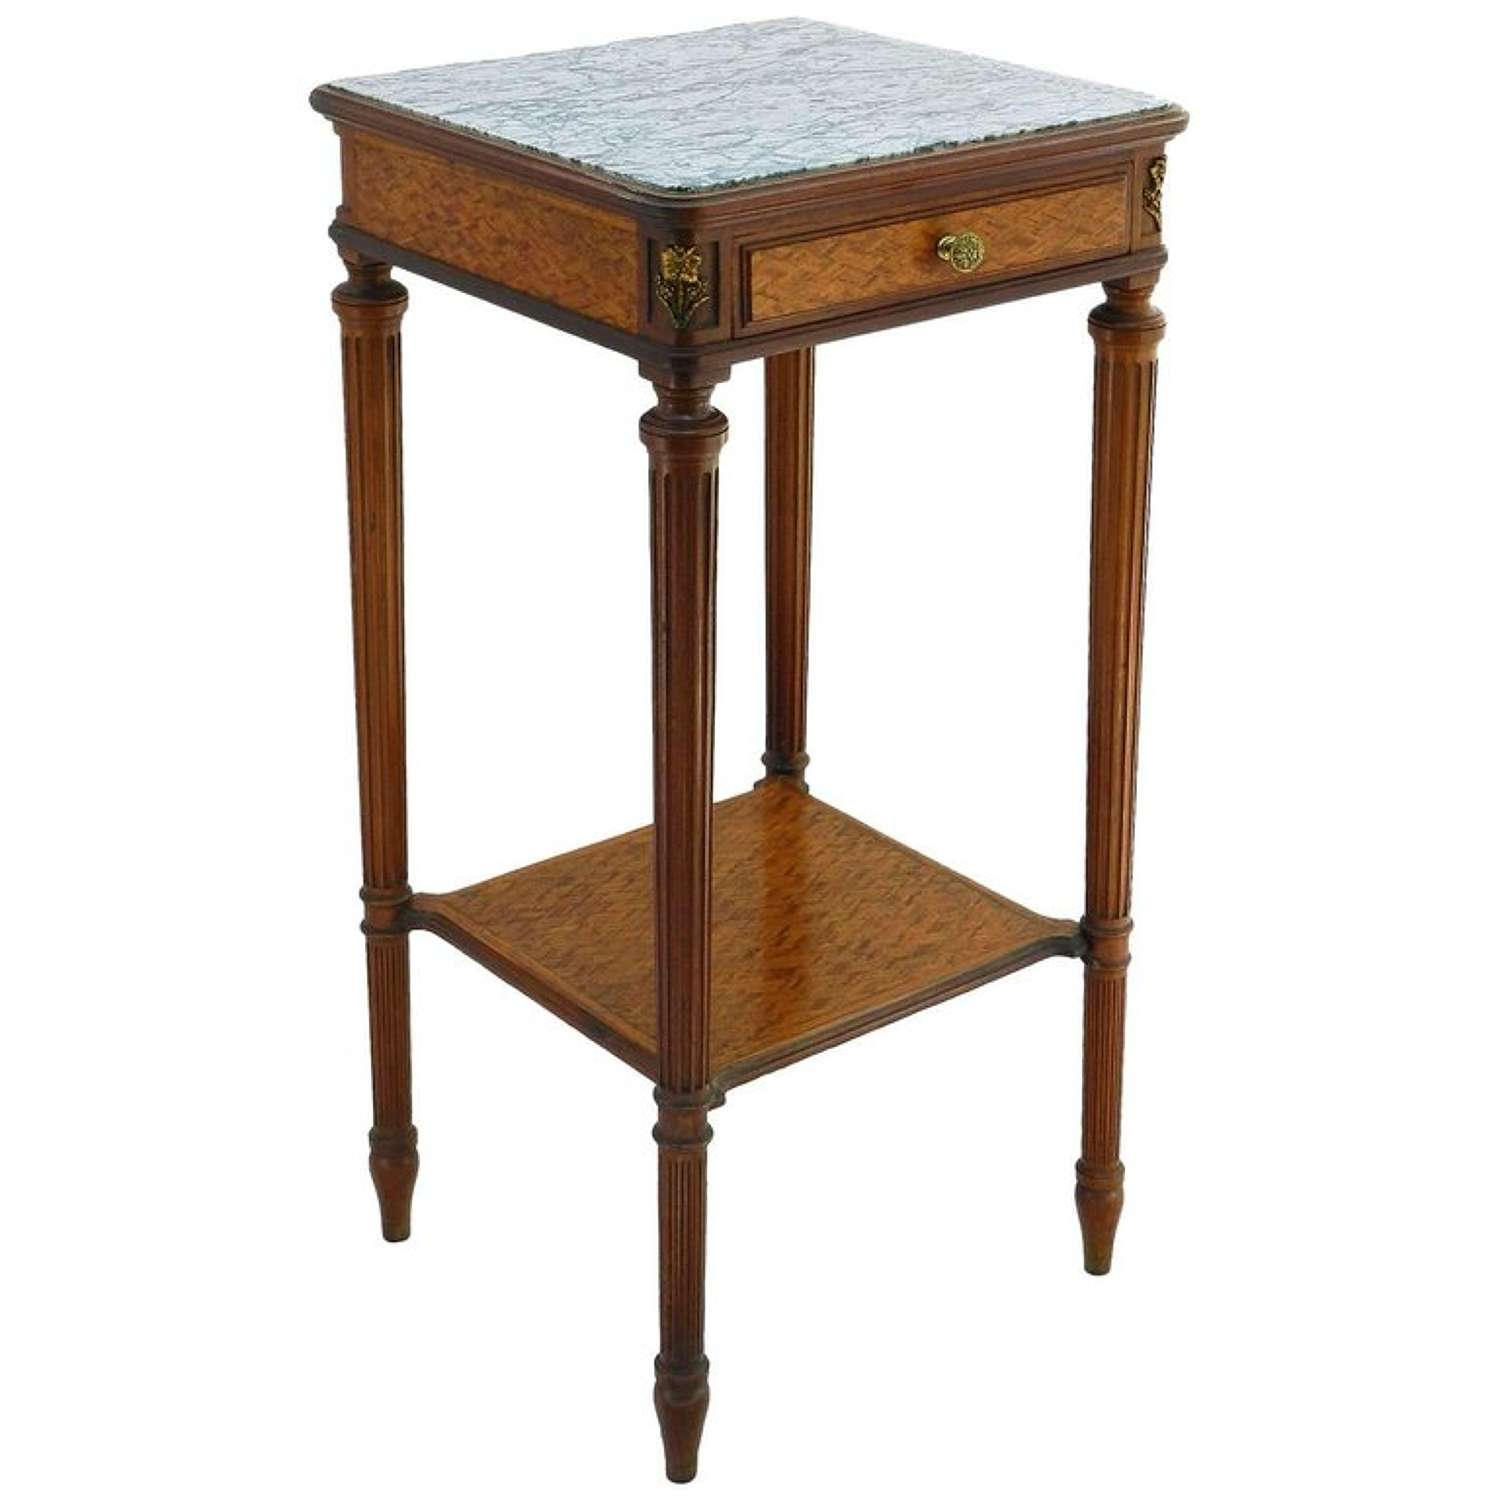 Louis XVI Style Side Table French Early 20th Century Empire Revival Makers Label